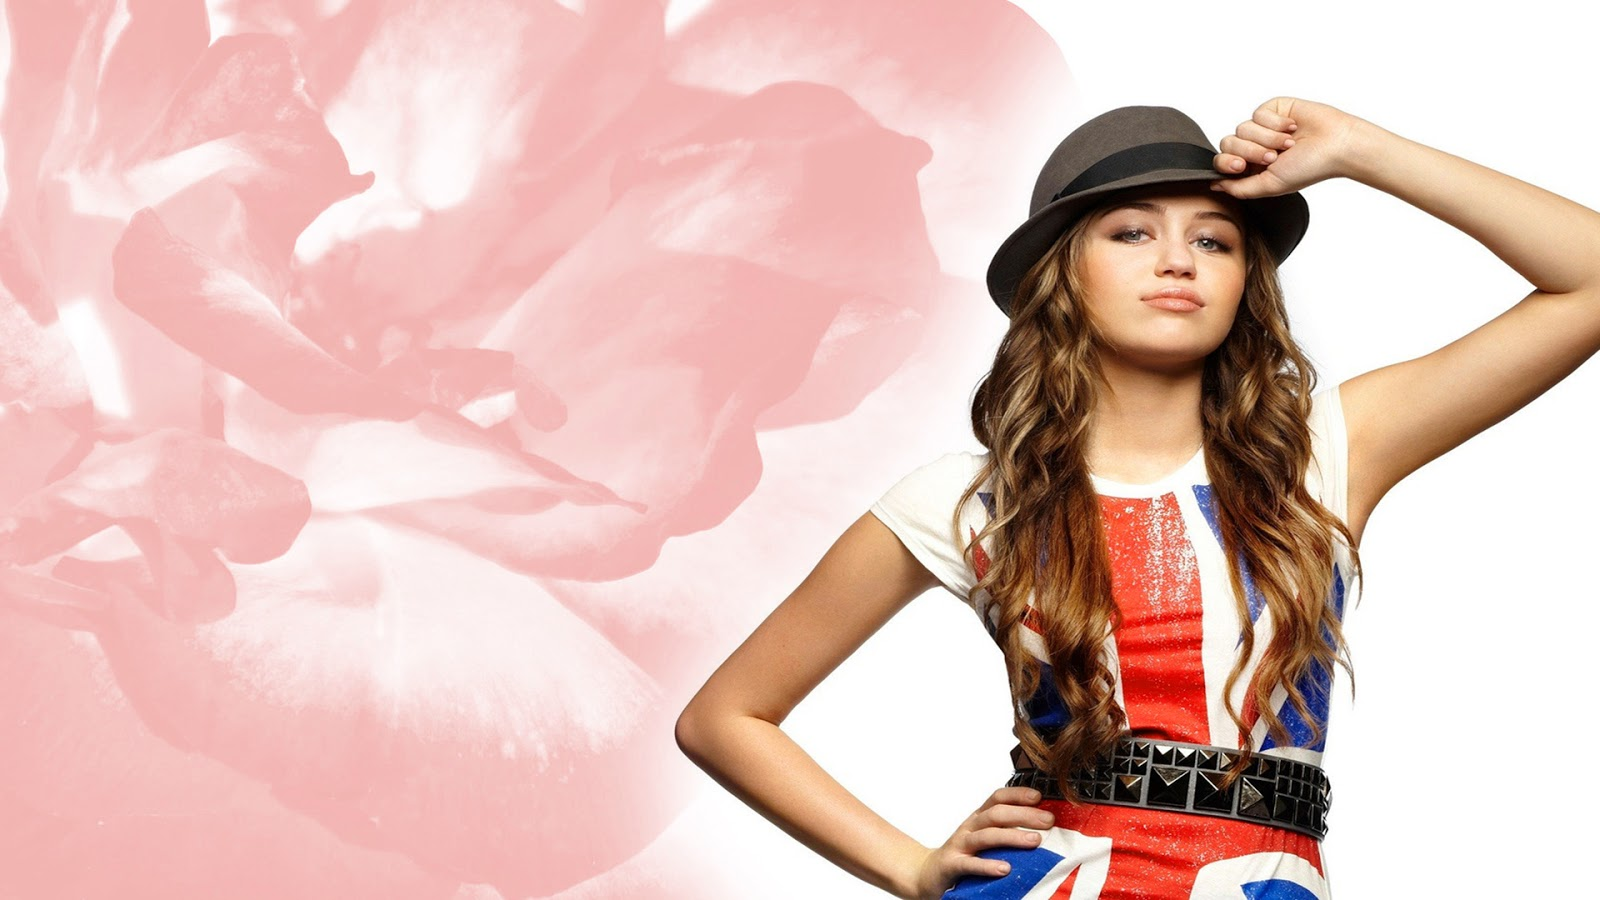 miley cyrus wallpapers hd download free 1080p